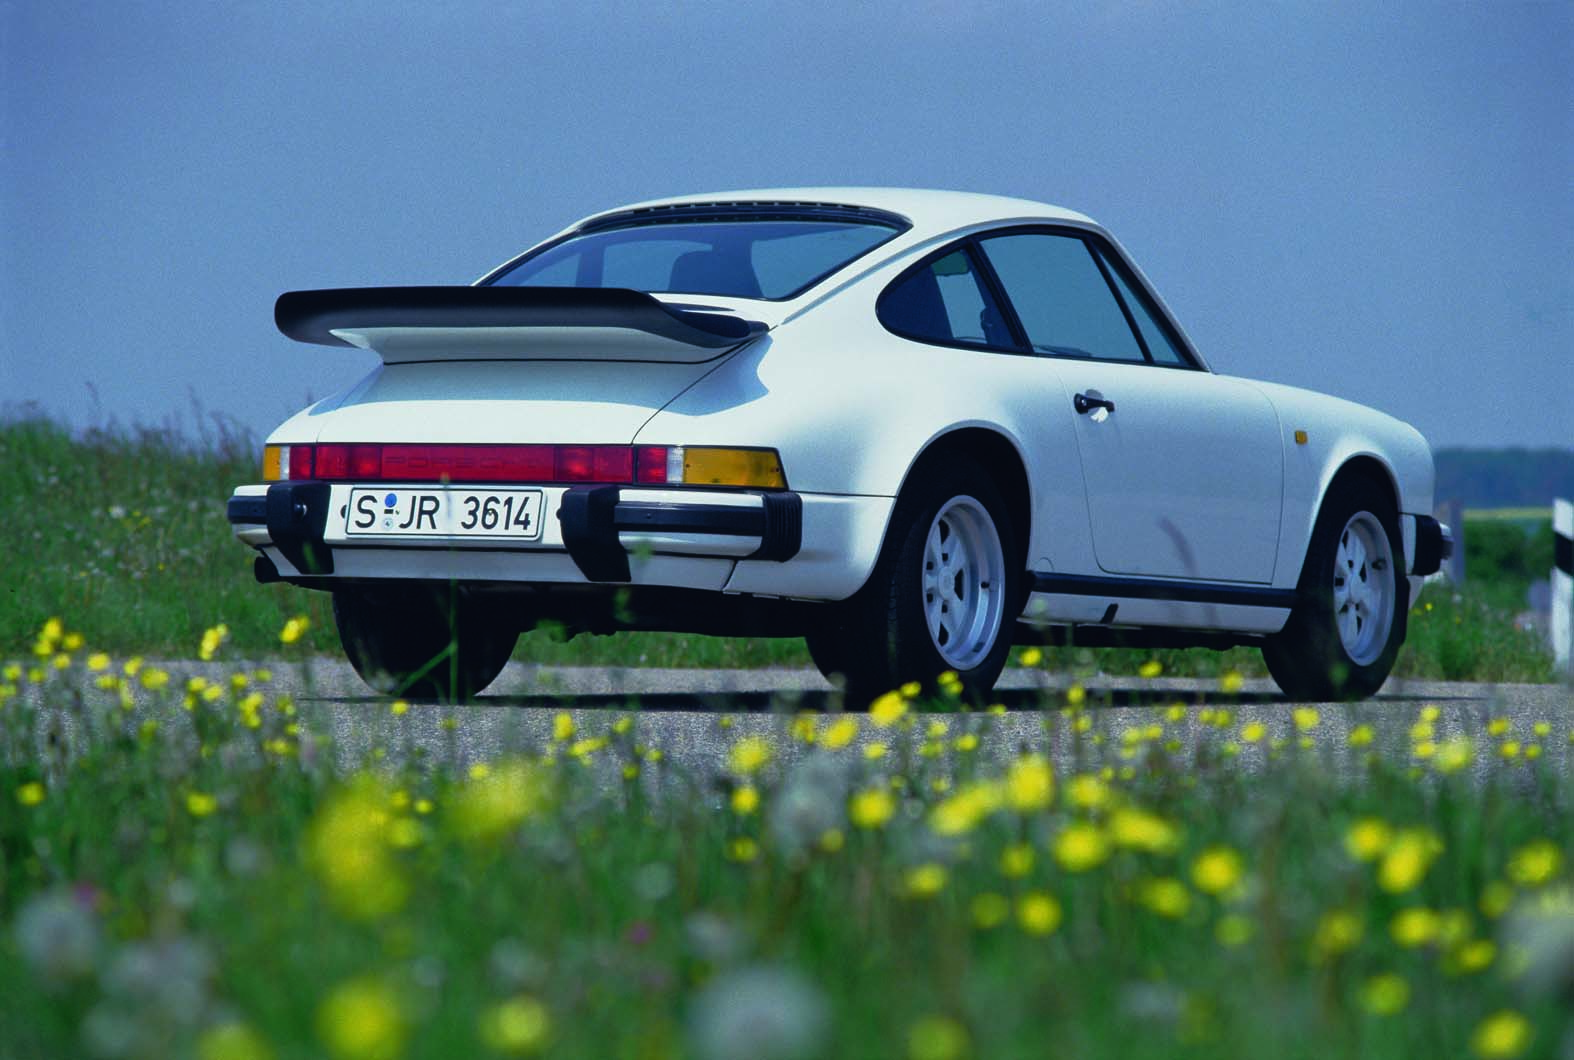 2019 Porsche 911 New Video Shows 992 Carrera 4s At The Nurburgring 996 Engine Cylinder Diagram 1994 993 Even Though Production Still Continues 20 Years Later Is Hailed By Purists As Last True